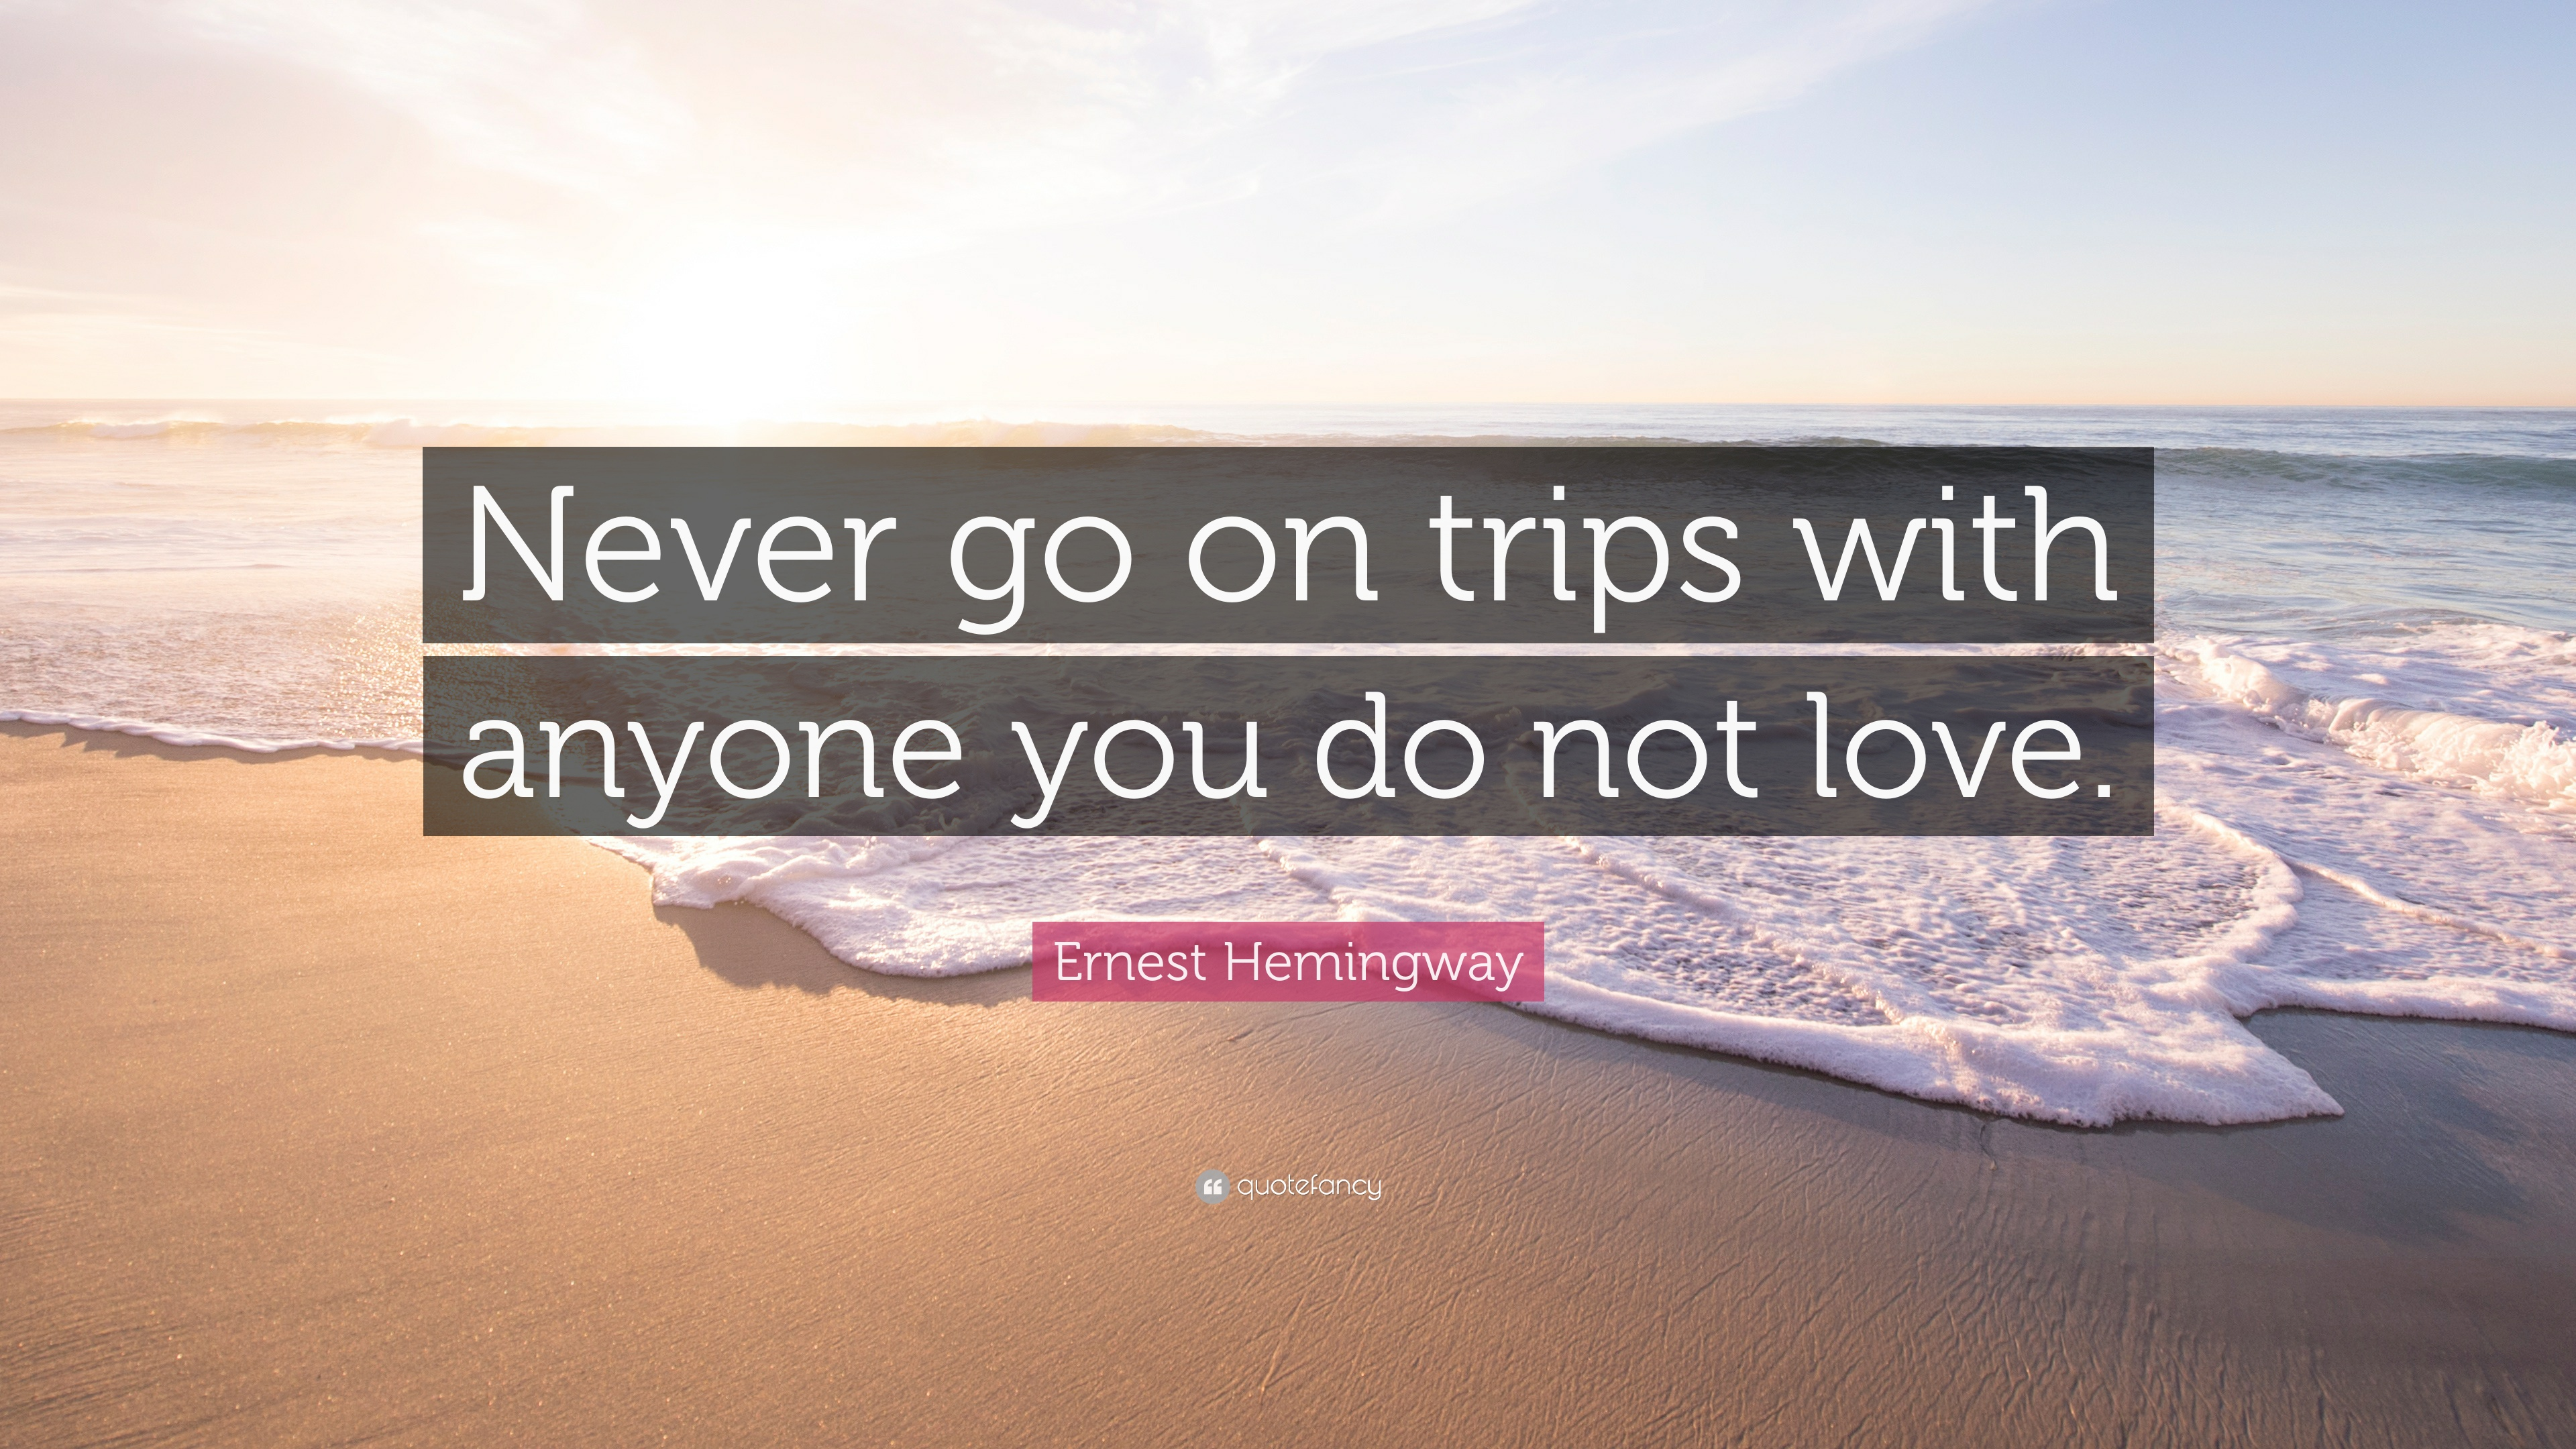 Ernest Hemingway Quote Never Go On Trips With Anyone You Do Not